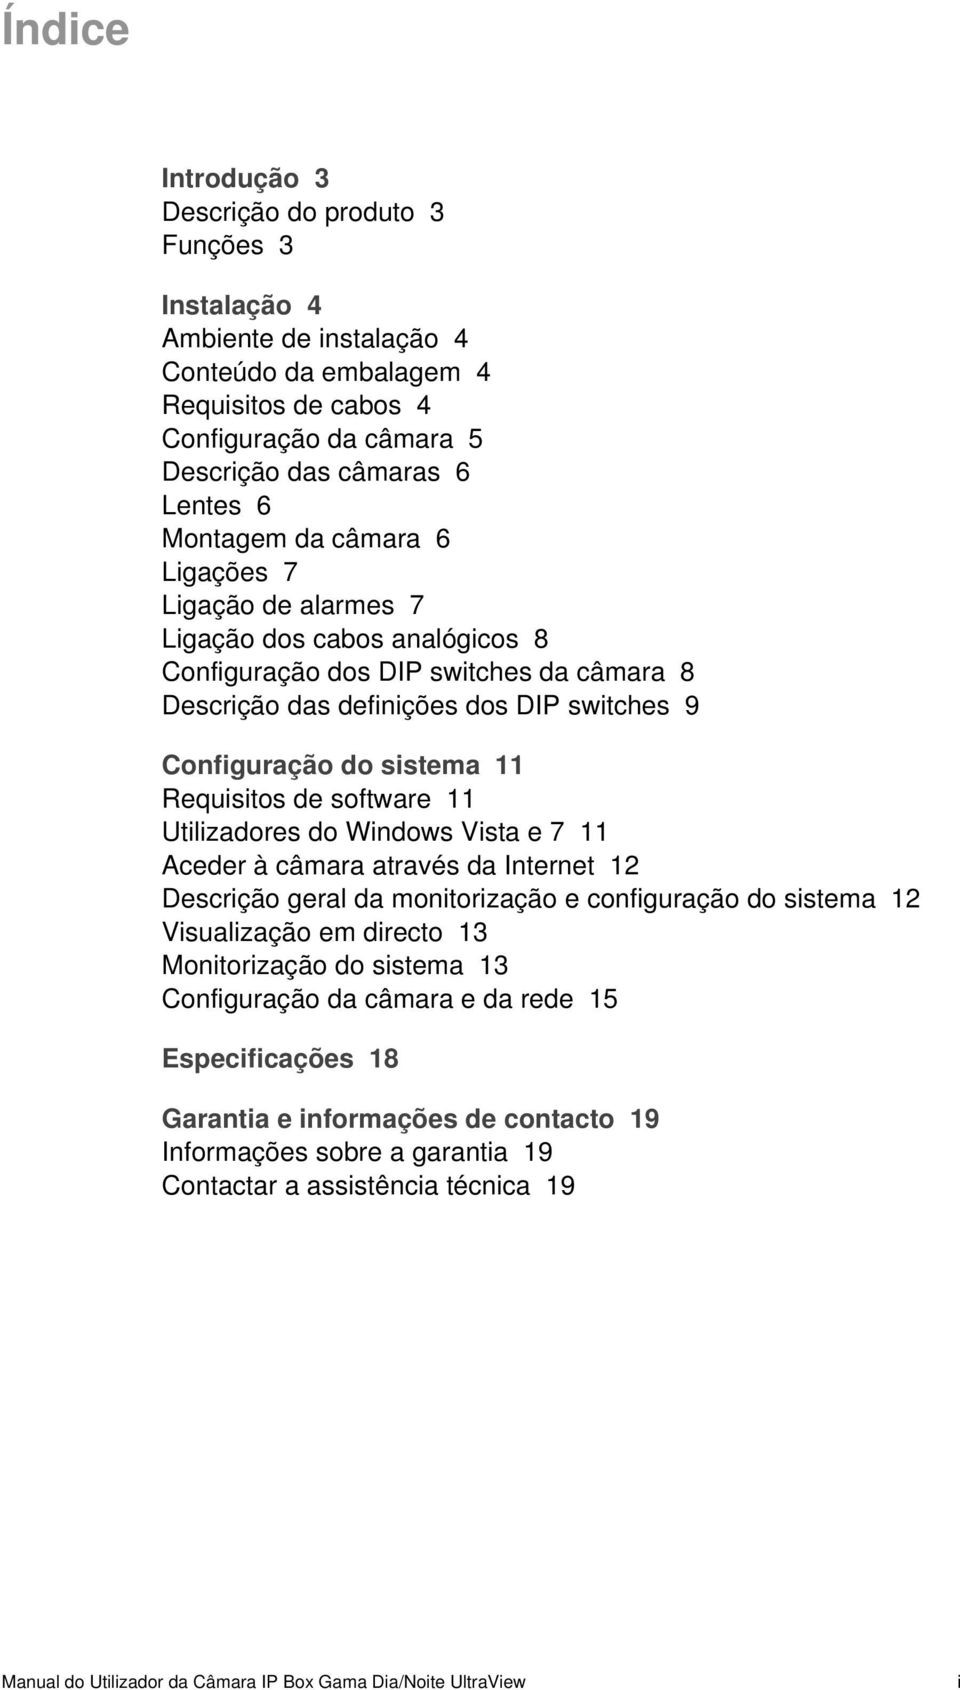 Requisitos de software 11 Utilizadores do Windows Vista e 7 11 Aceder à câmara através da Internet 12 Descrição geral da monitorização e configuração do sistema 12 Visualização em directo 13